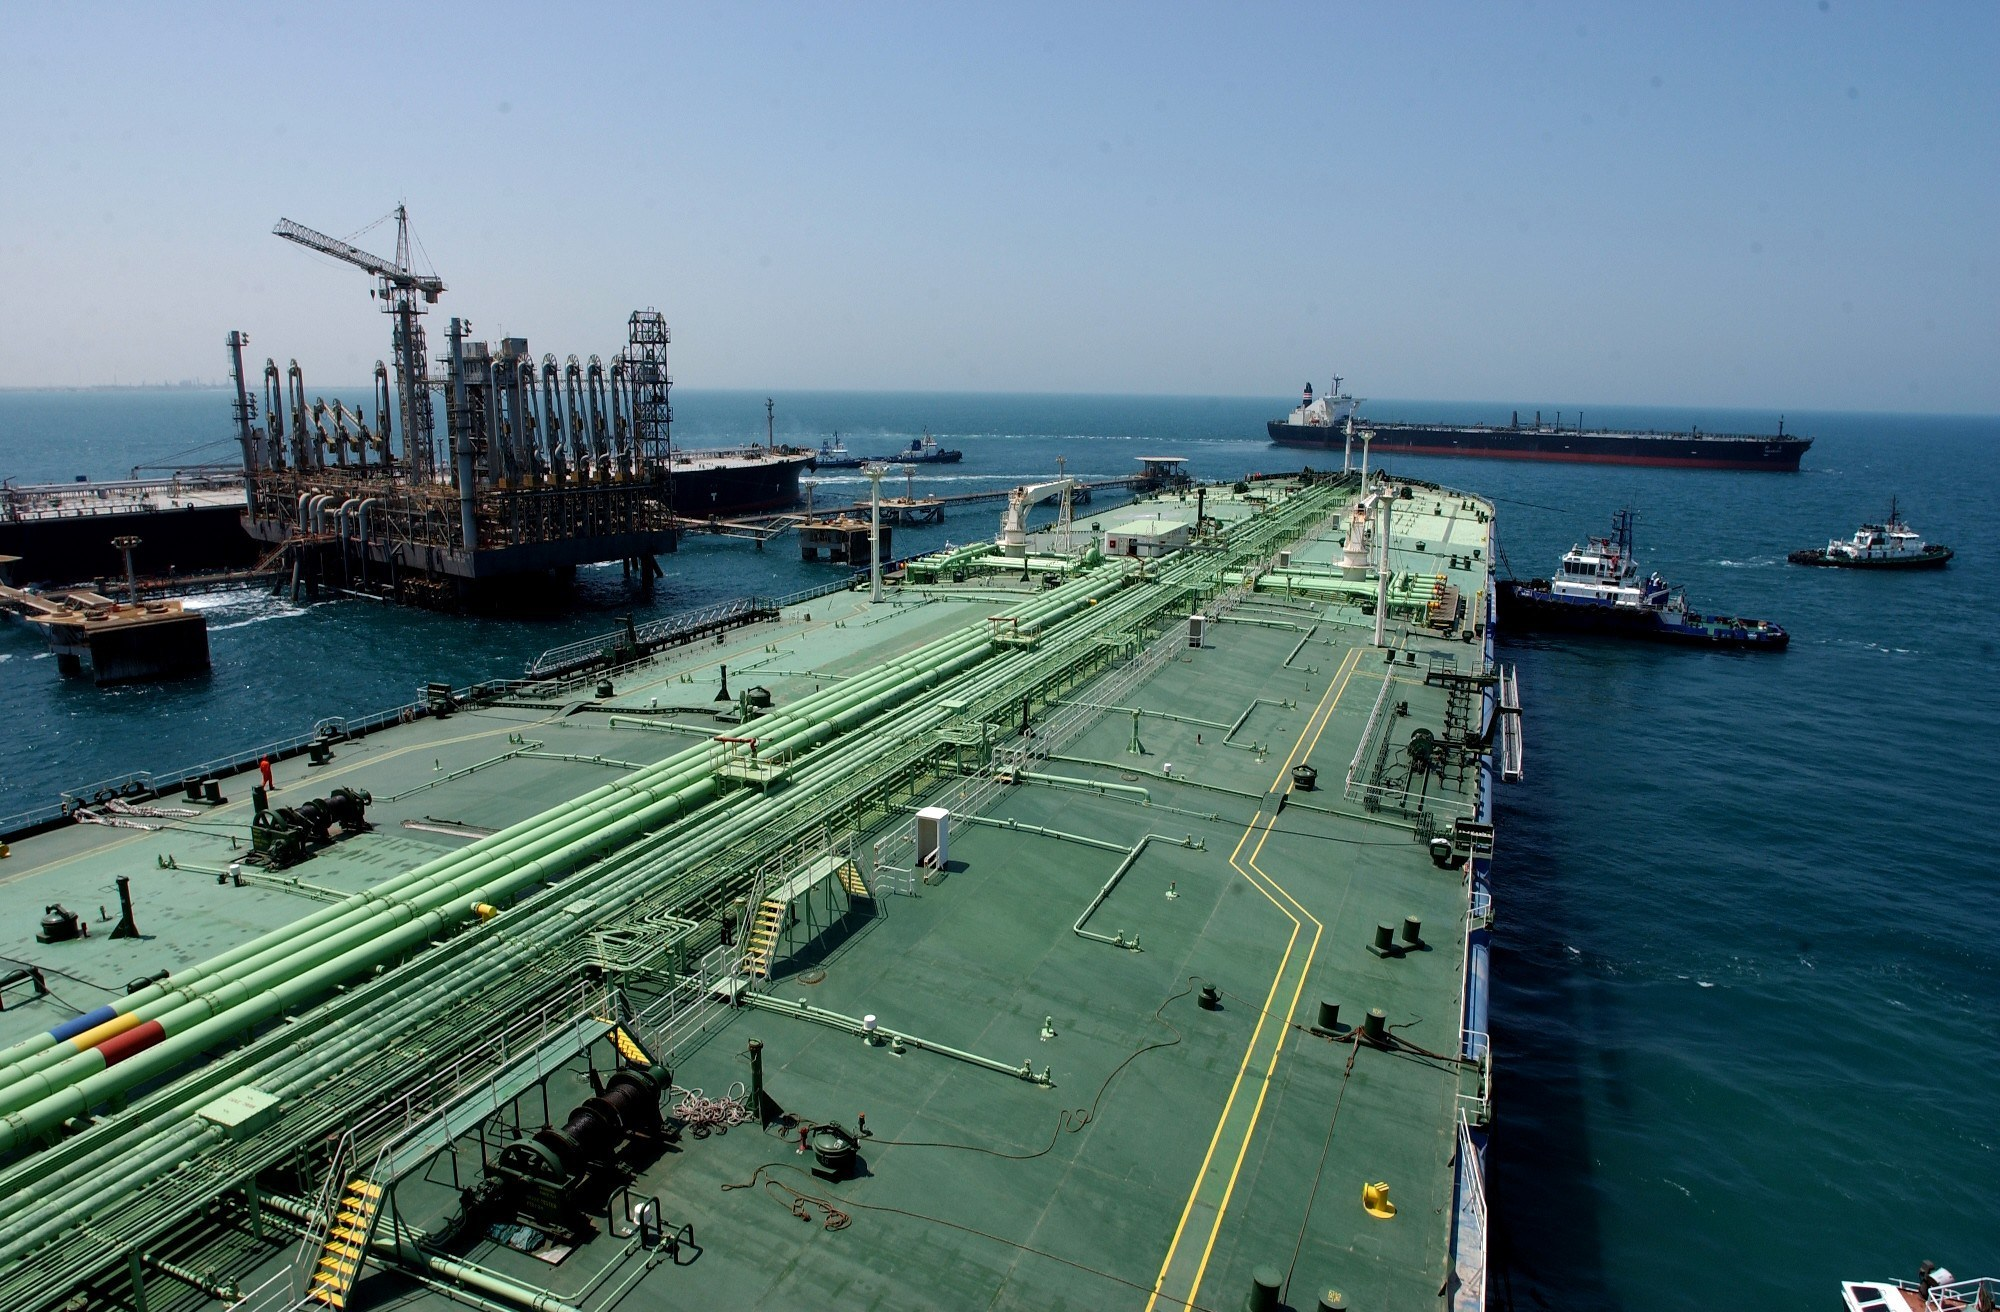 The Ras Tanura oil terminal